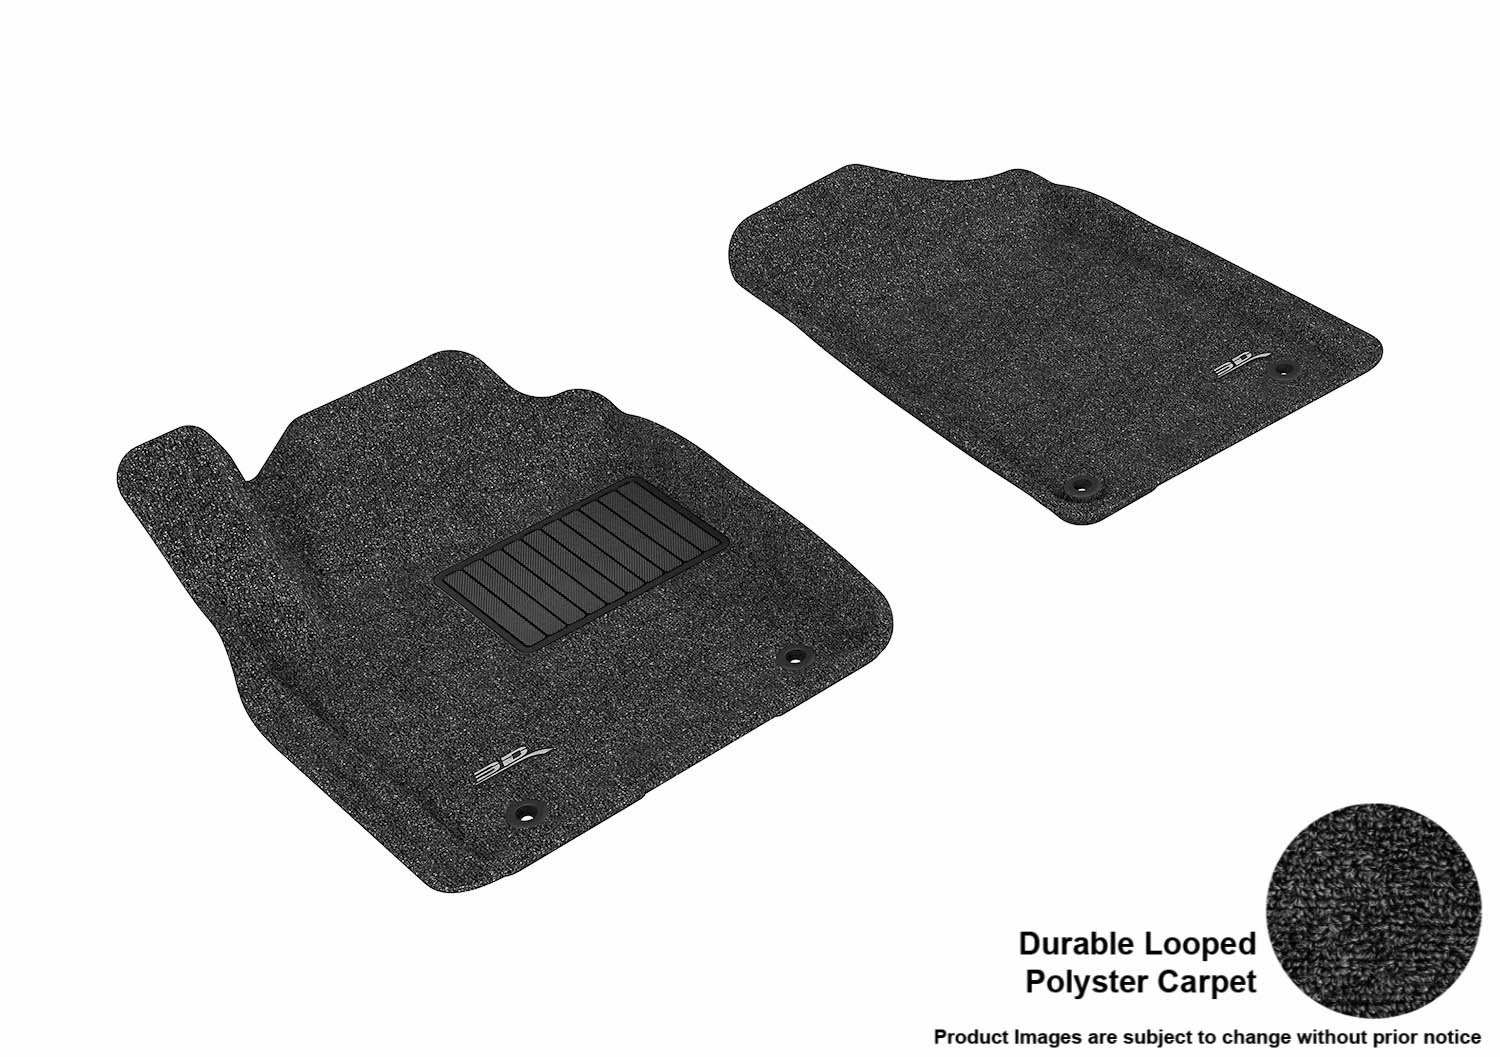 2011 2012 Ford Fusion Sedan Brown Driver /& Passenger Floor GGBAILEY D60037-F1A-CH-BR Custom Fit Car Mats for 2010